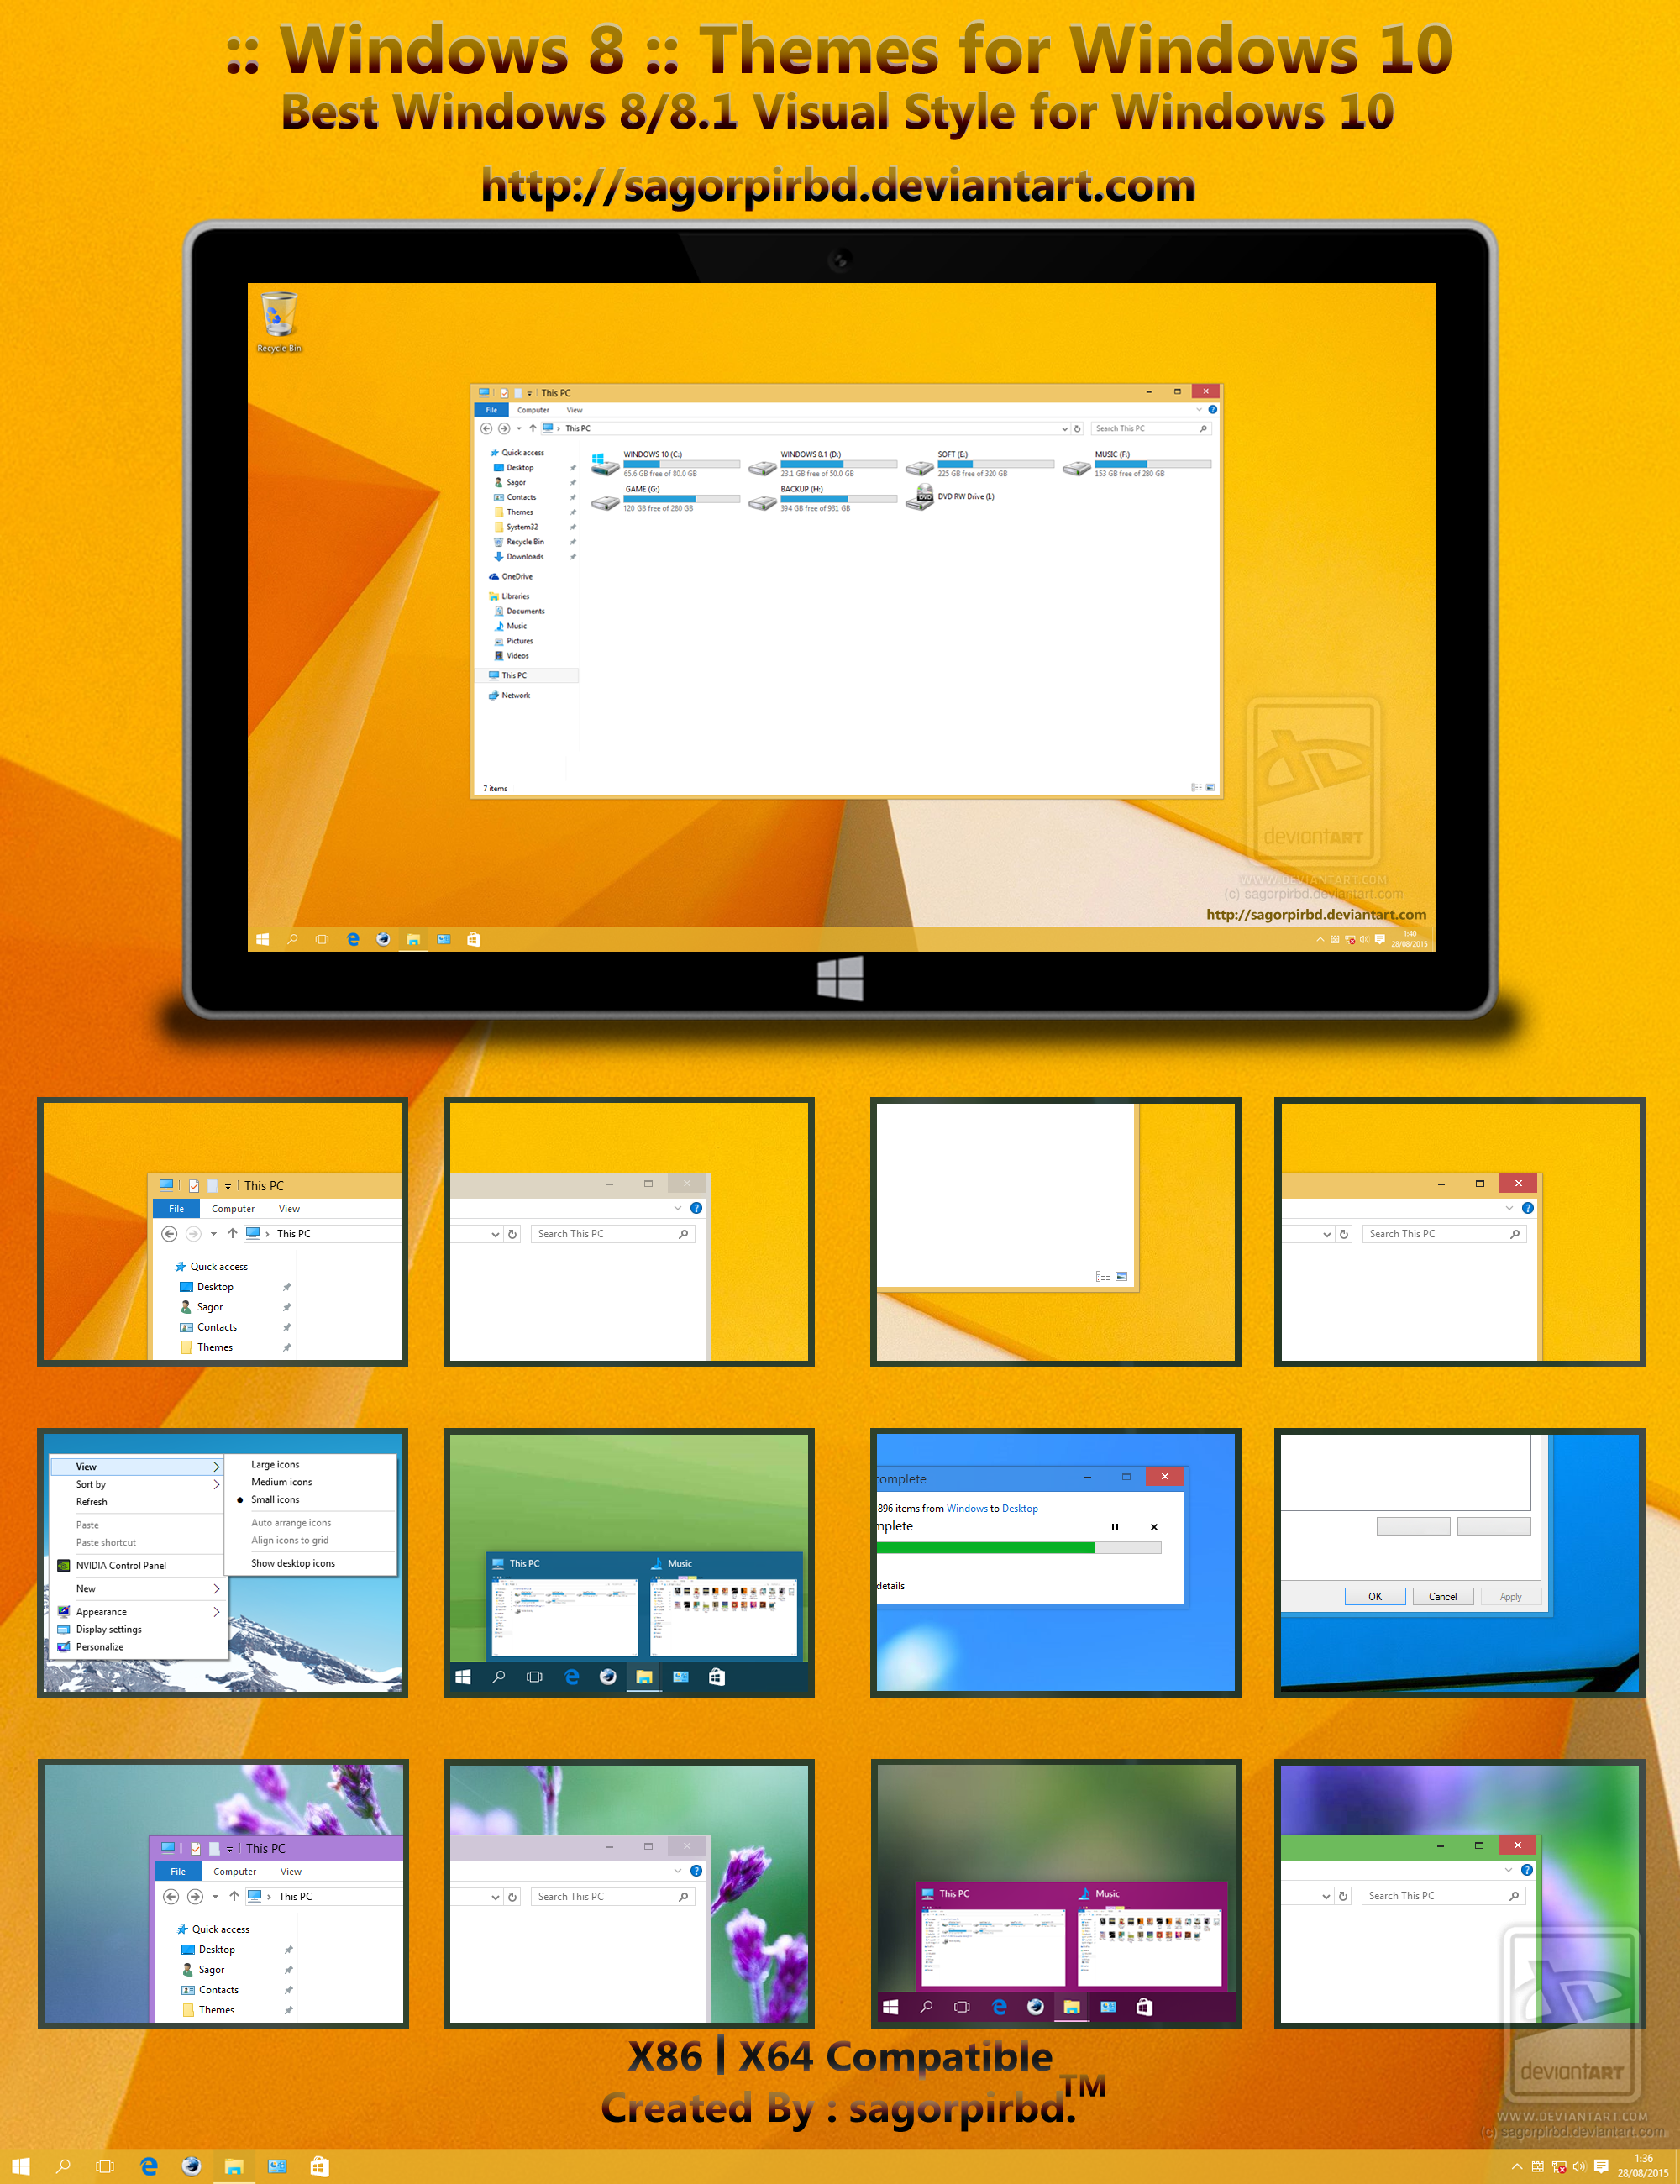 Windows 8 Themes for Win10 Final by sagorpirbd on DeviantArt